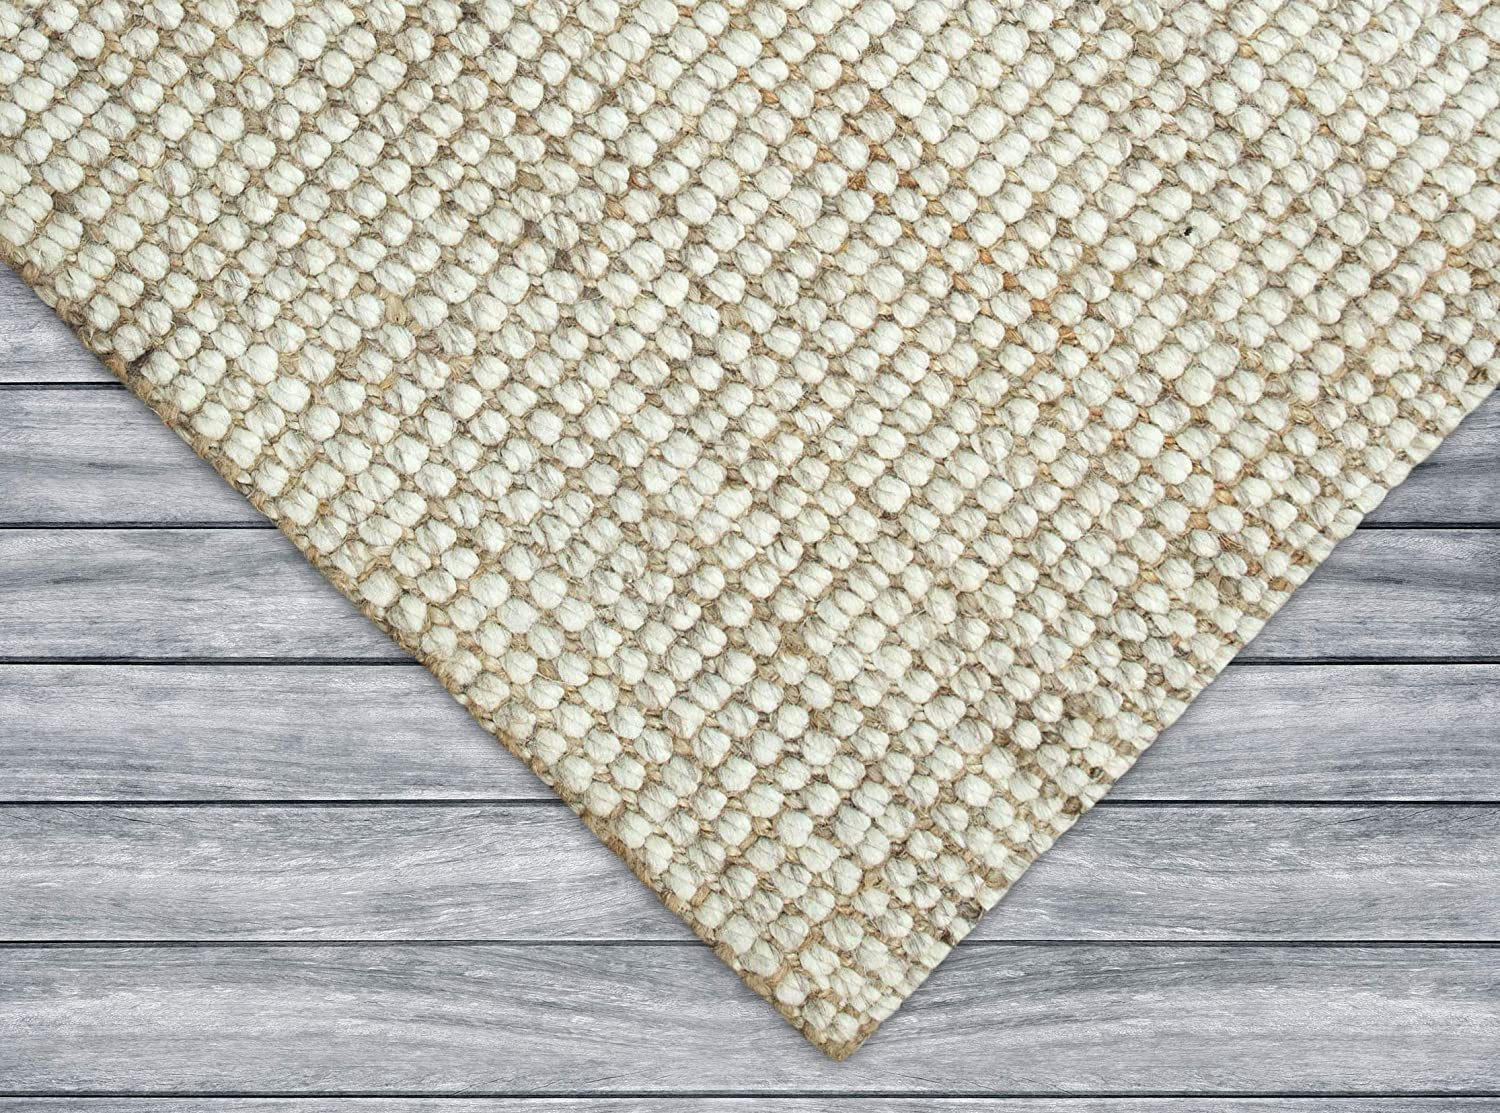 Iron Gate Handspun Wool Jute Area Rug 3x5 Feet -Natural - Hand Woven by Skilled Artisans, Made from Natural Jute Yarns, Thick Ribbed Construction, Reversible for Double The wear,